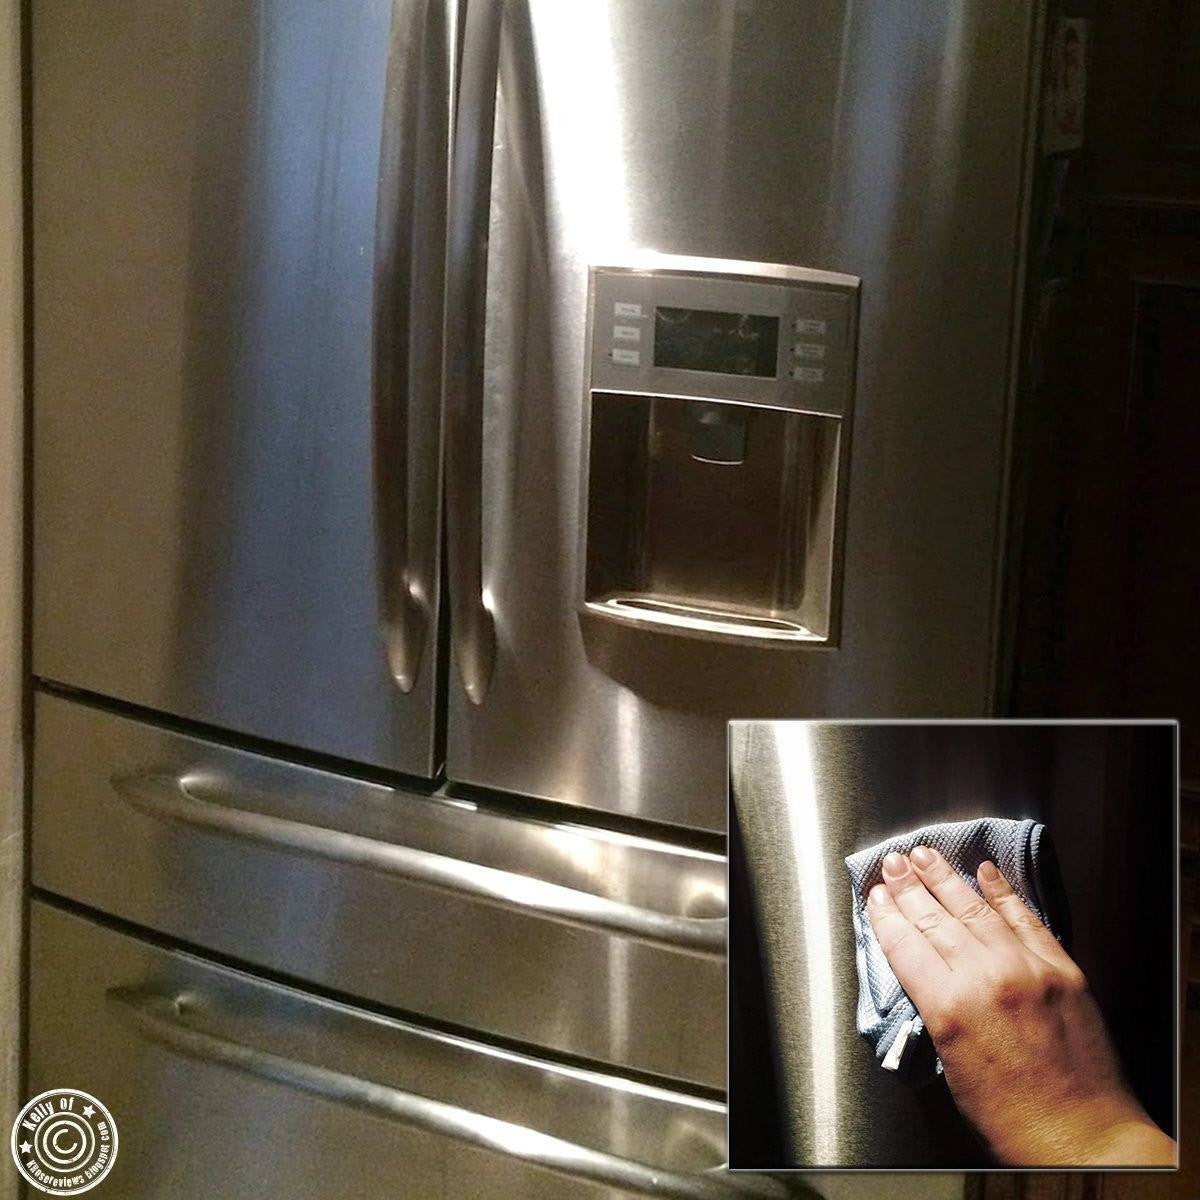 ... Microfiber Cleaning Cloth   Household Wipes And Cloths   Polish Clean  Stainless Steel Sinks   Streak